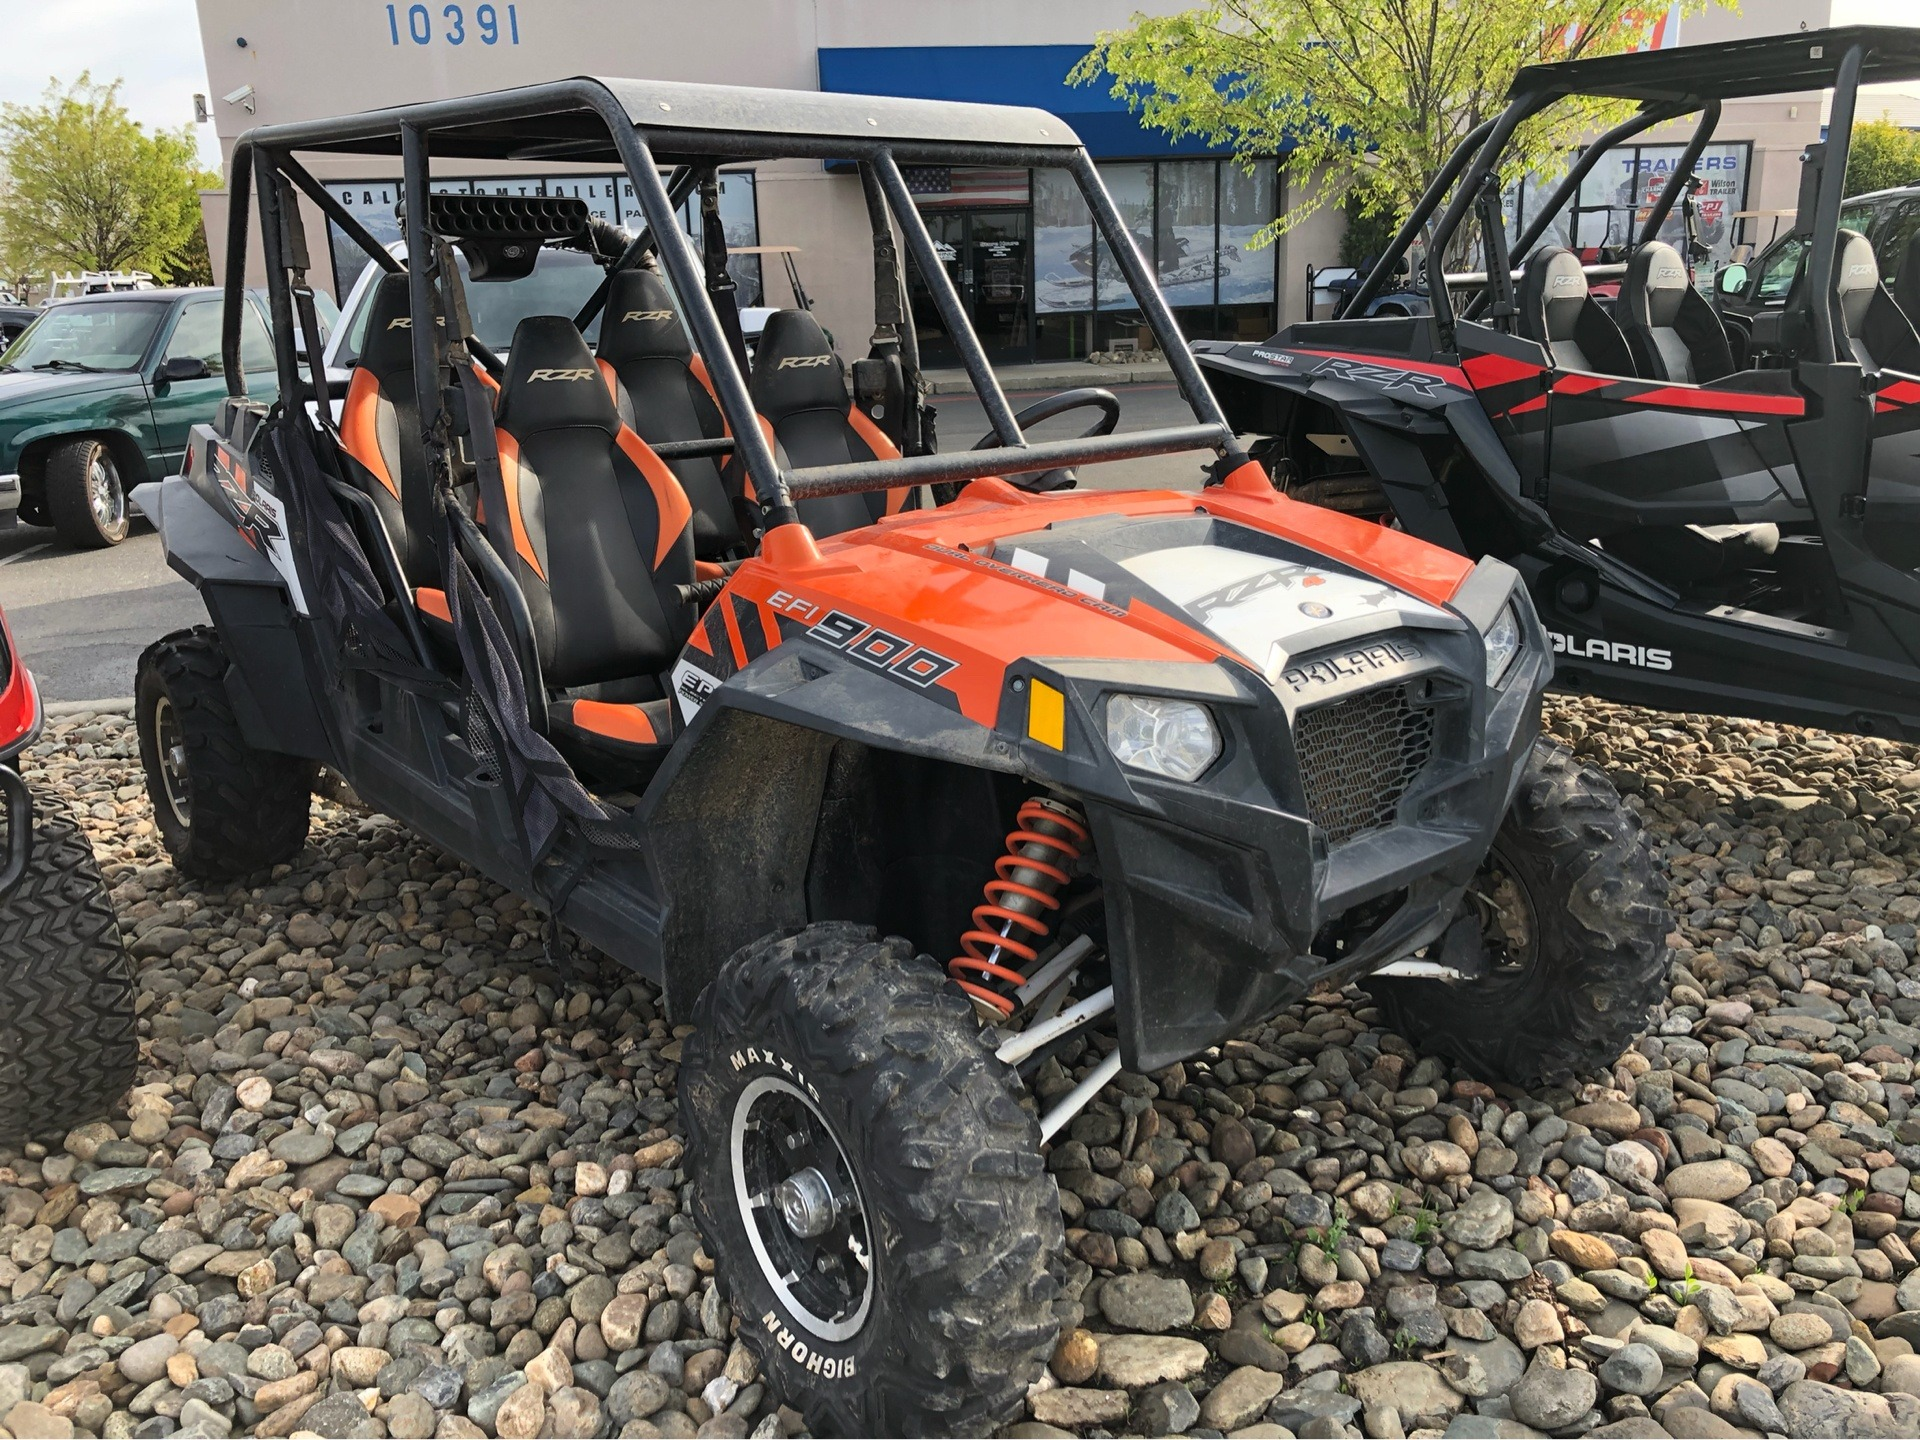 2012 Polaris Ranger RZR® XP 900 LE in Elk Grove, California - Photo 1